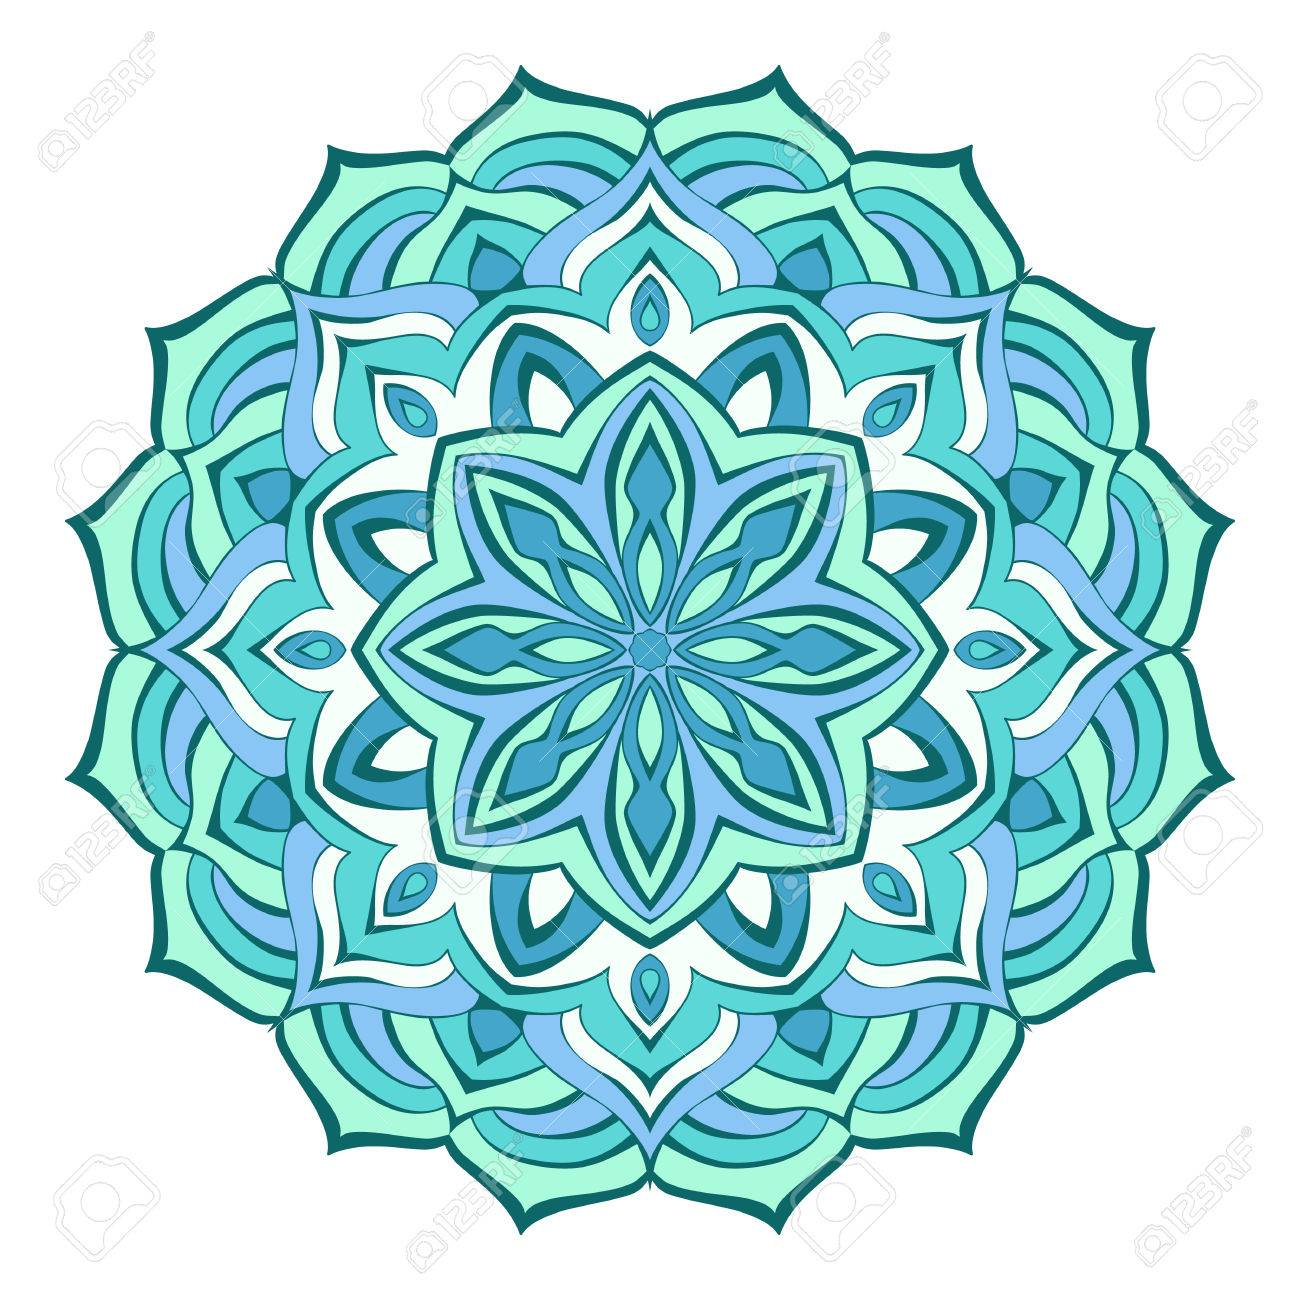 Mandala Fantasy Of Flowing Lines In A Turquoise Blue Color Scheme